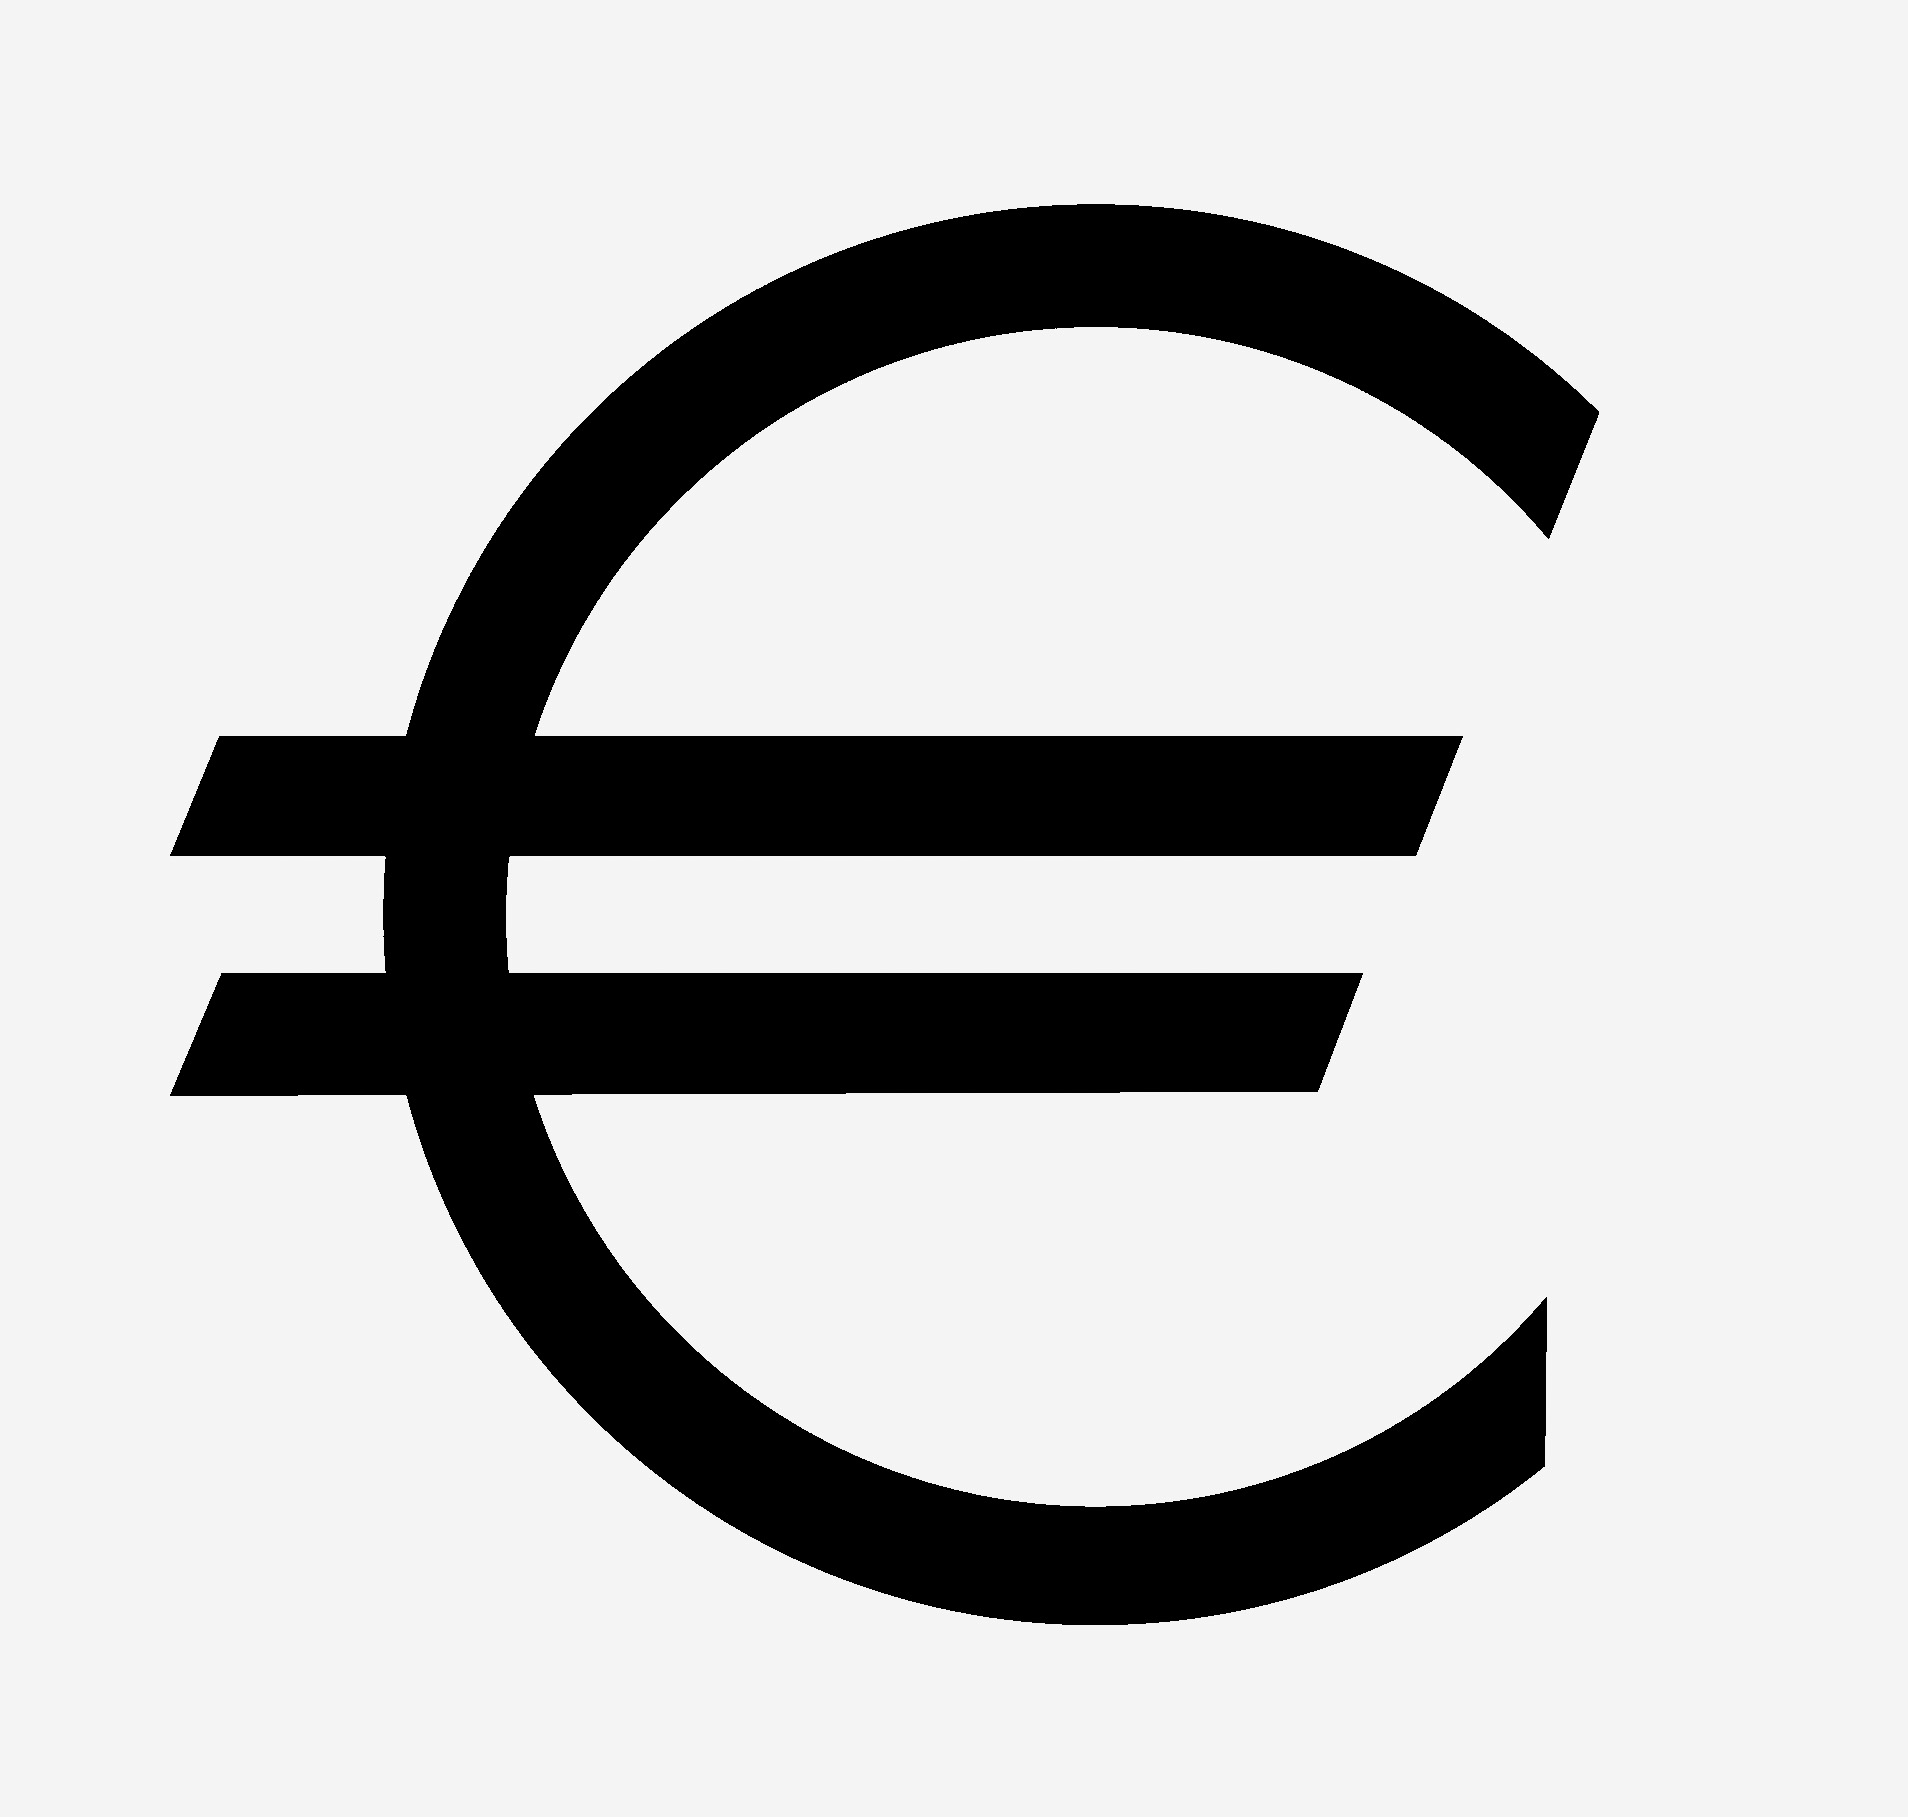 Euro Symbol Official Bitmap And Vector Image Download